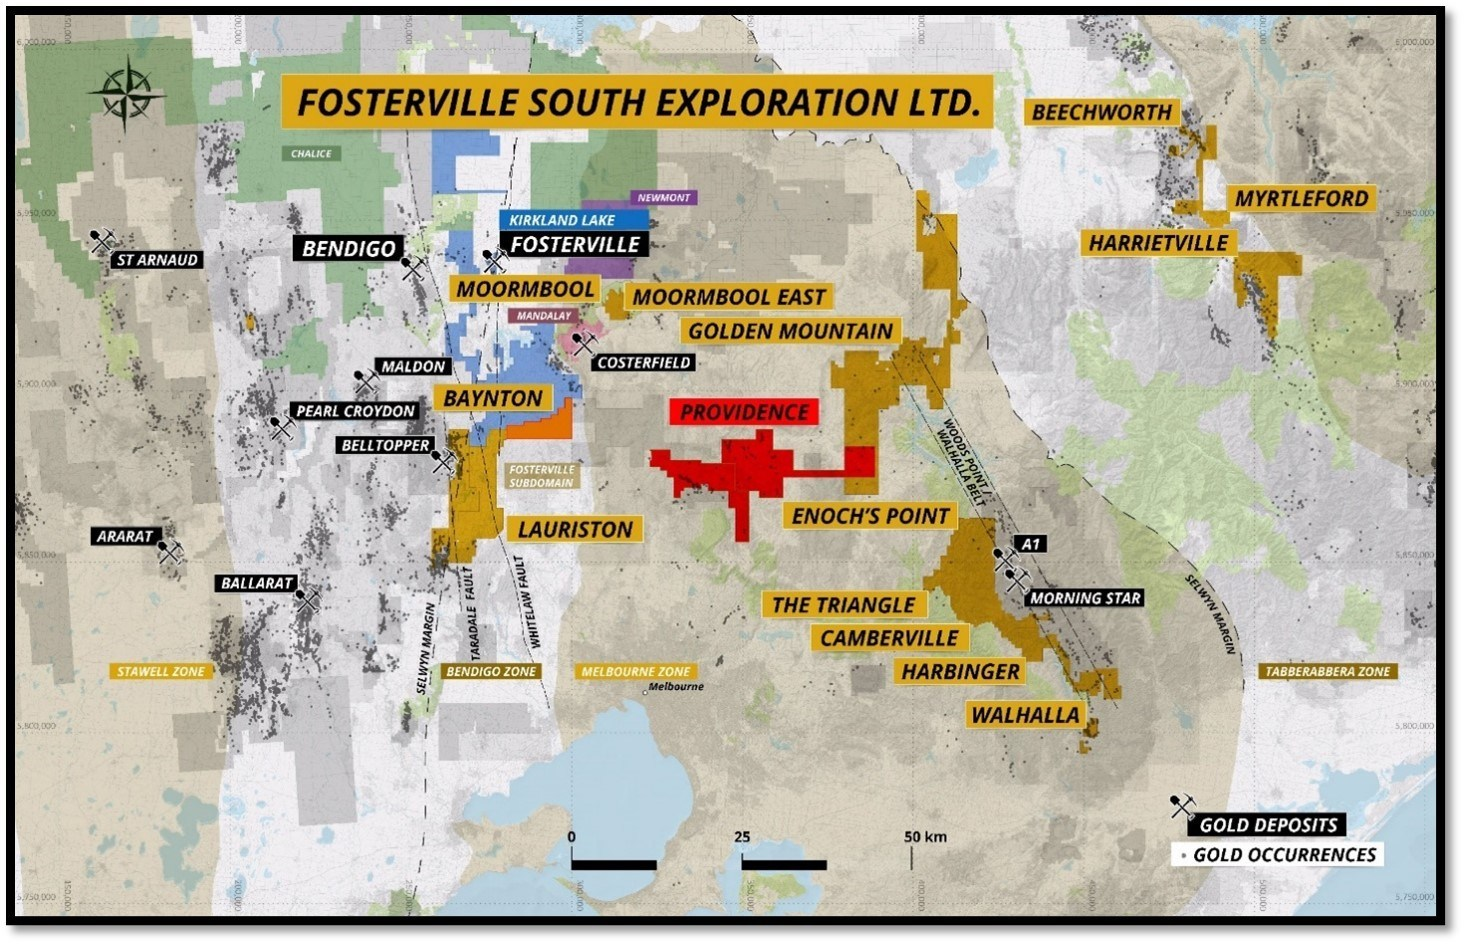 Figure 2 – Fosterville South Overview Map (CNW Group/Fosterville South Exploration Ltd.)